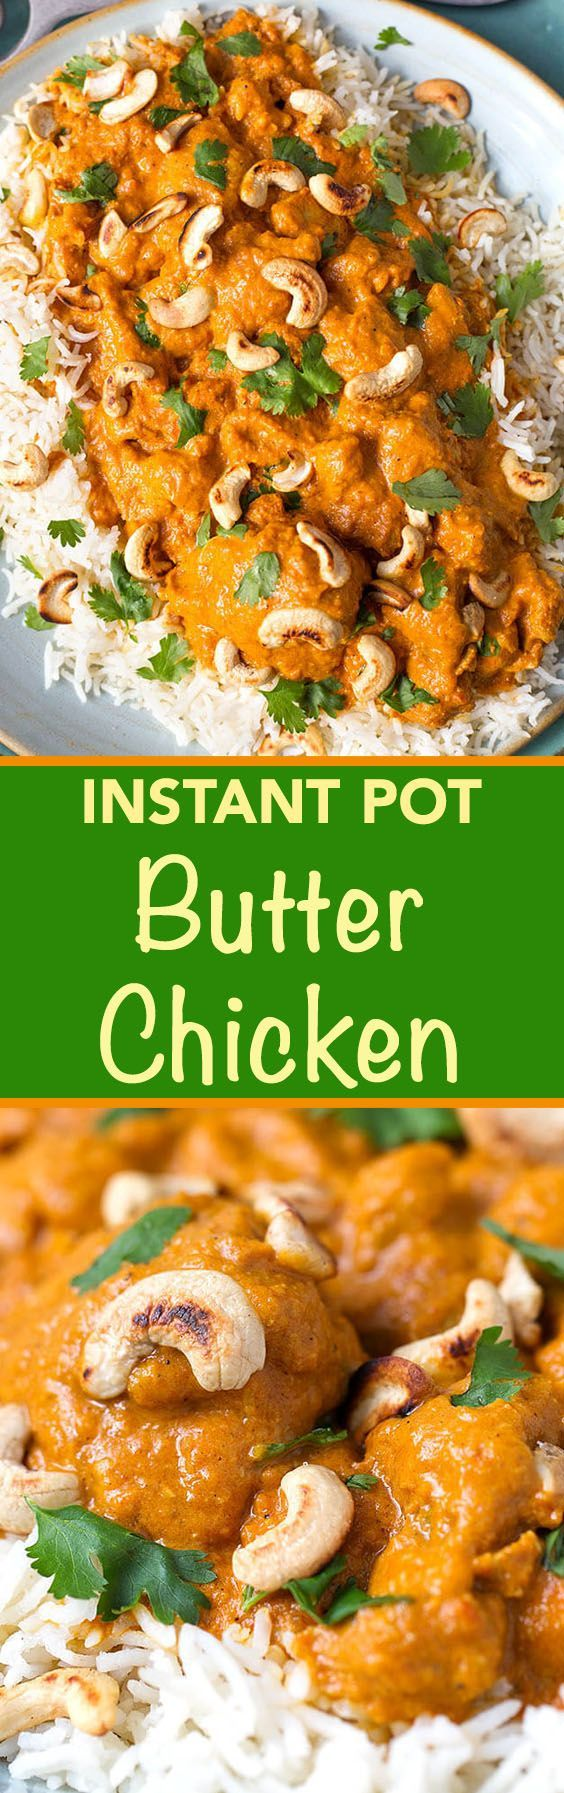 Instant Pot Butter Chicken is rich and super flavorful. Make this awesome tasting and easy Butter Chicken in your pressure cooker! simplyhappyfoodie.com #butterchickenrecipe #instantpotrecipes #instantpotbutterchicken #instapot